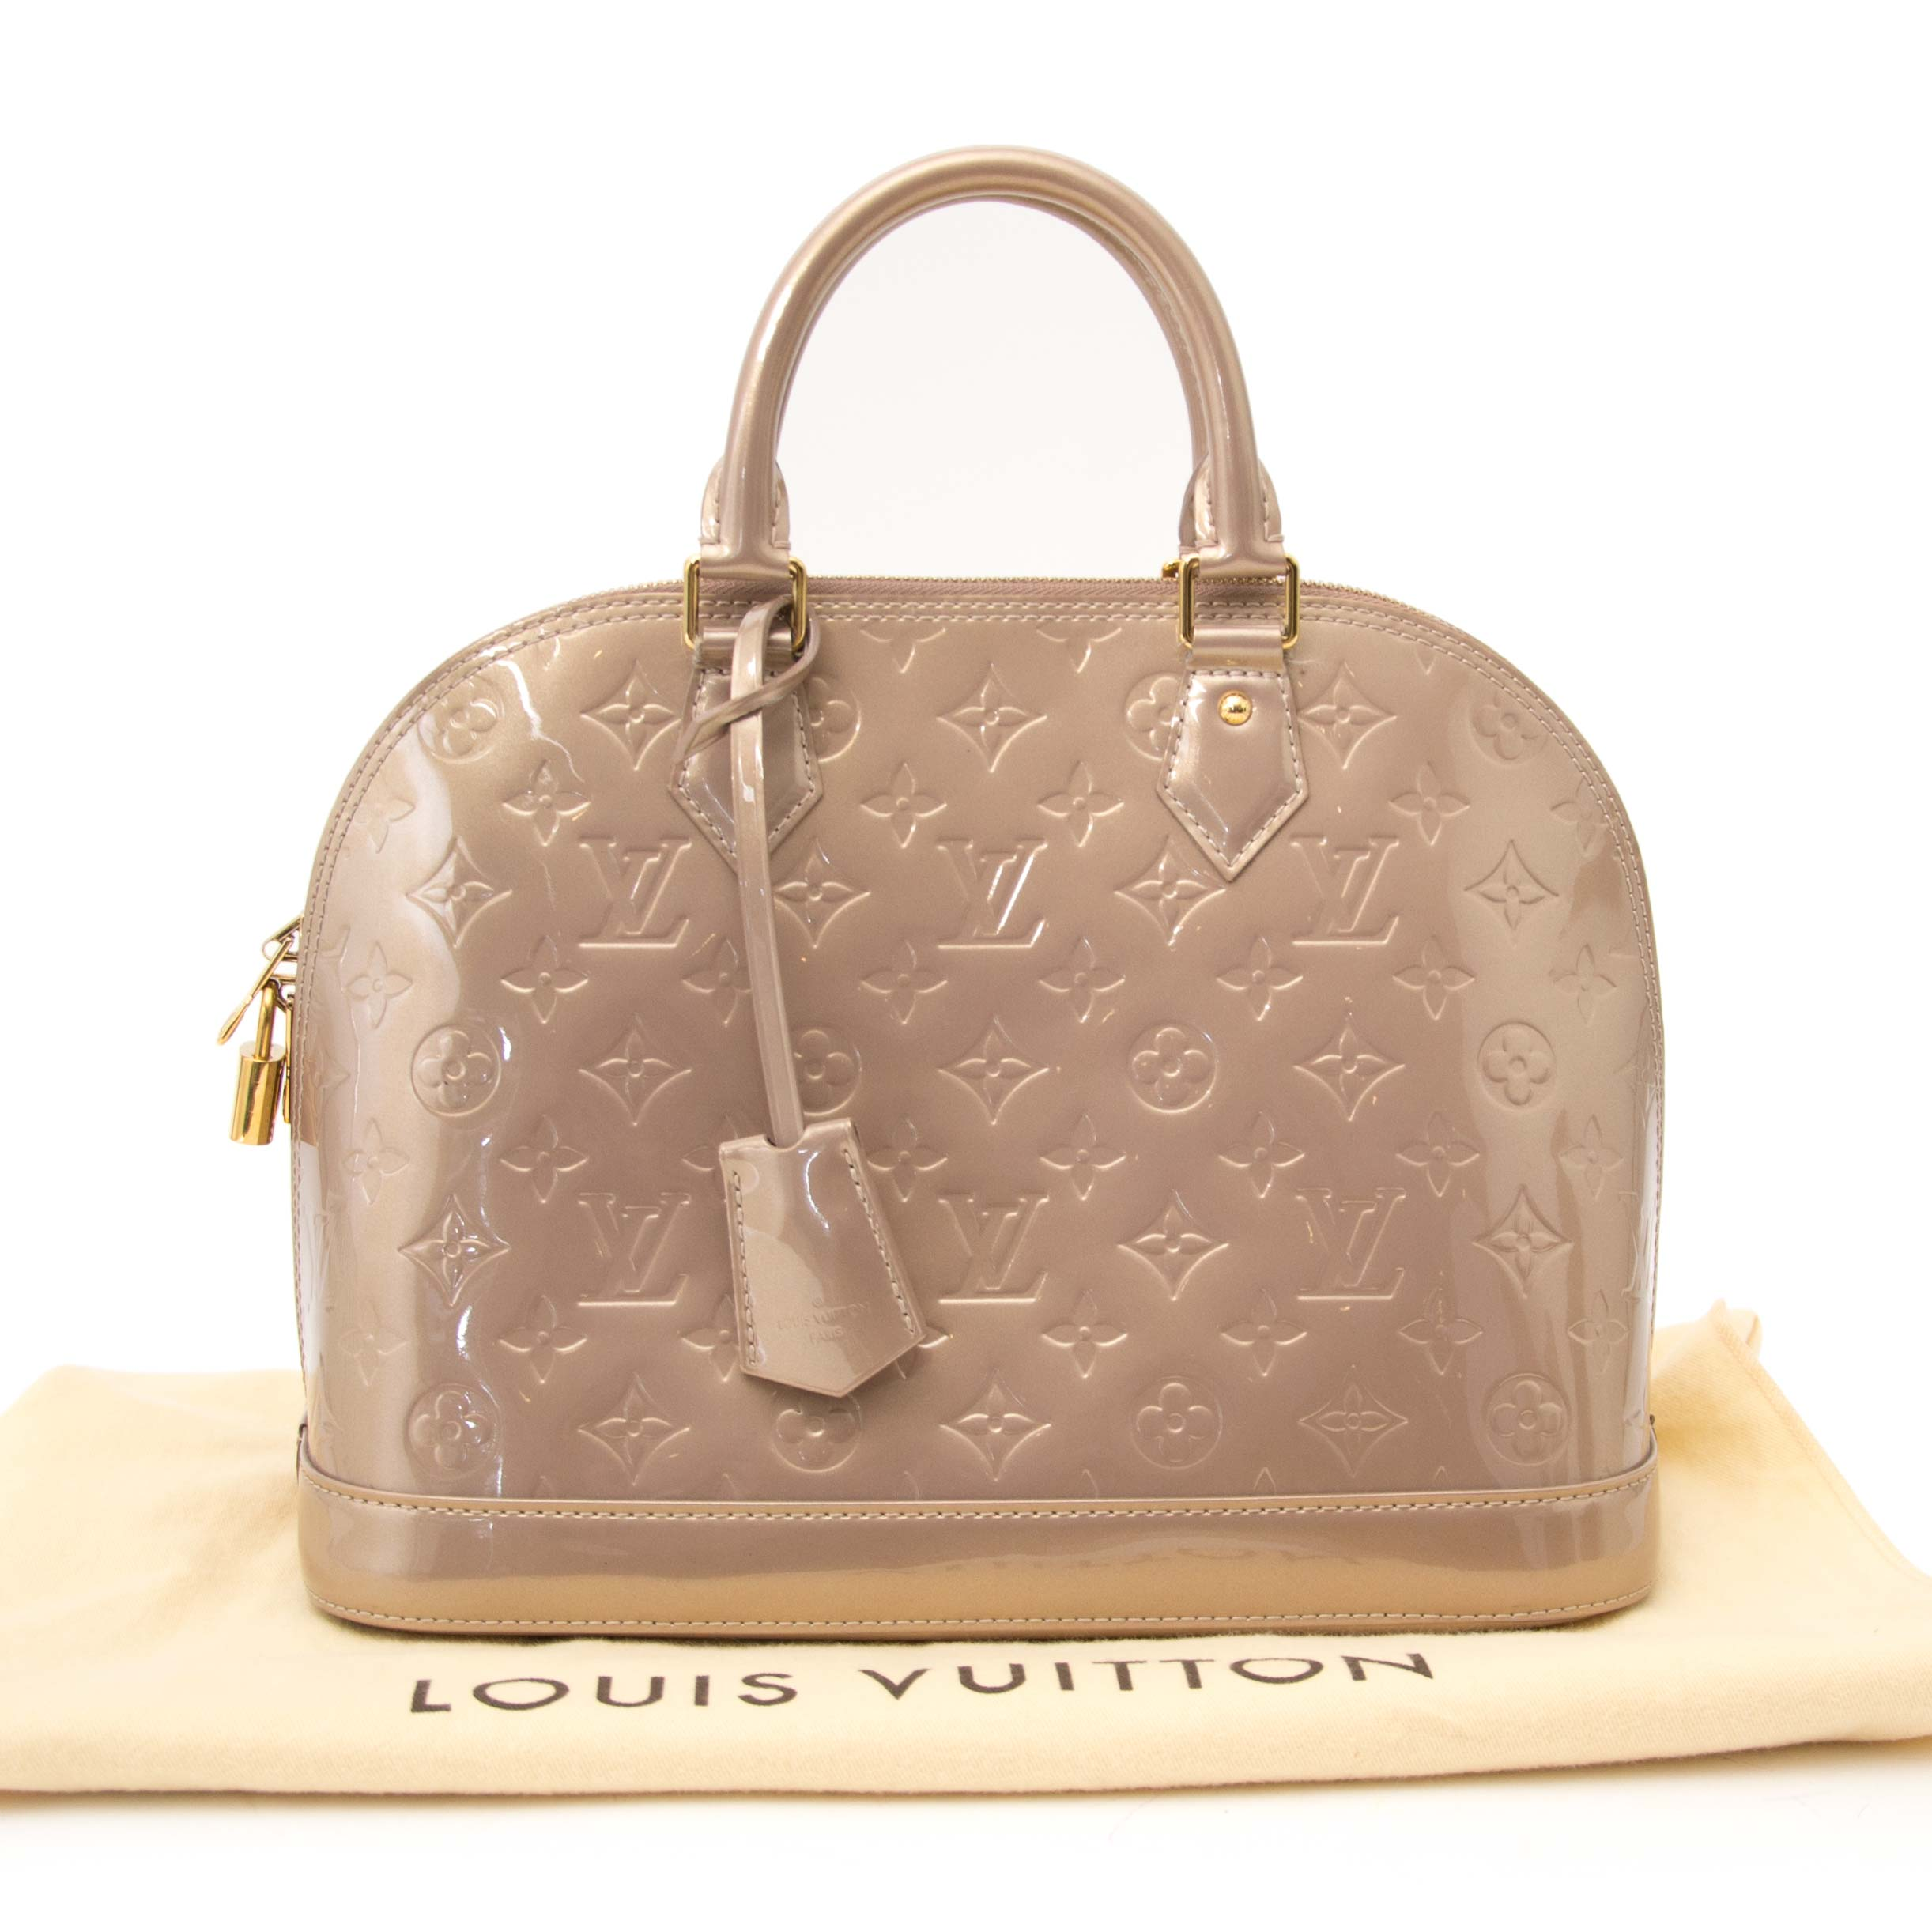 buy safe and secure online at labellov.com for the best price louis vuitton alma vernis taupe monogram almaa